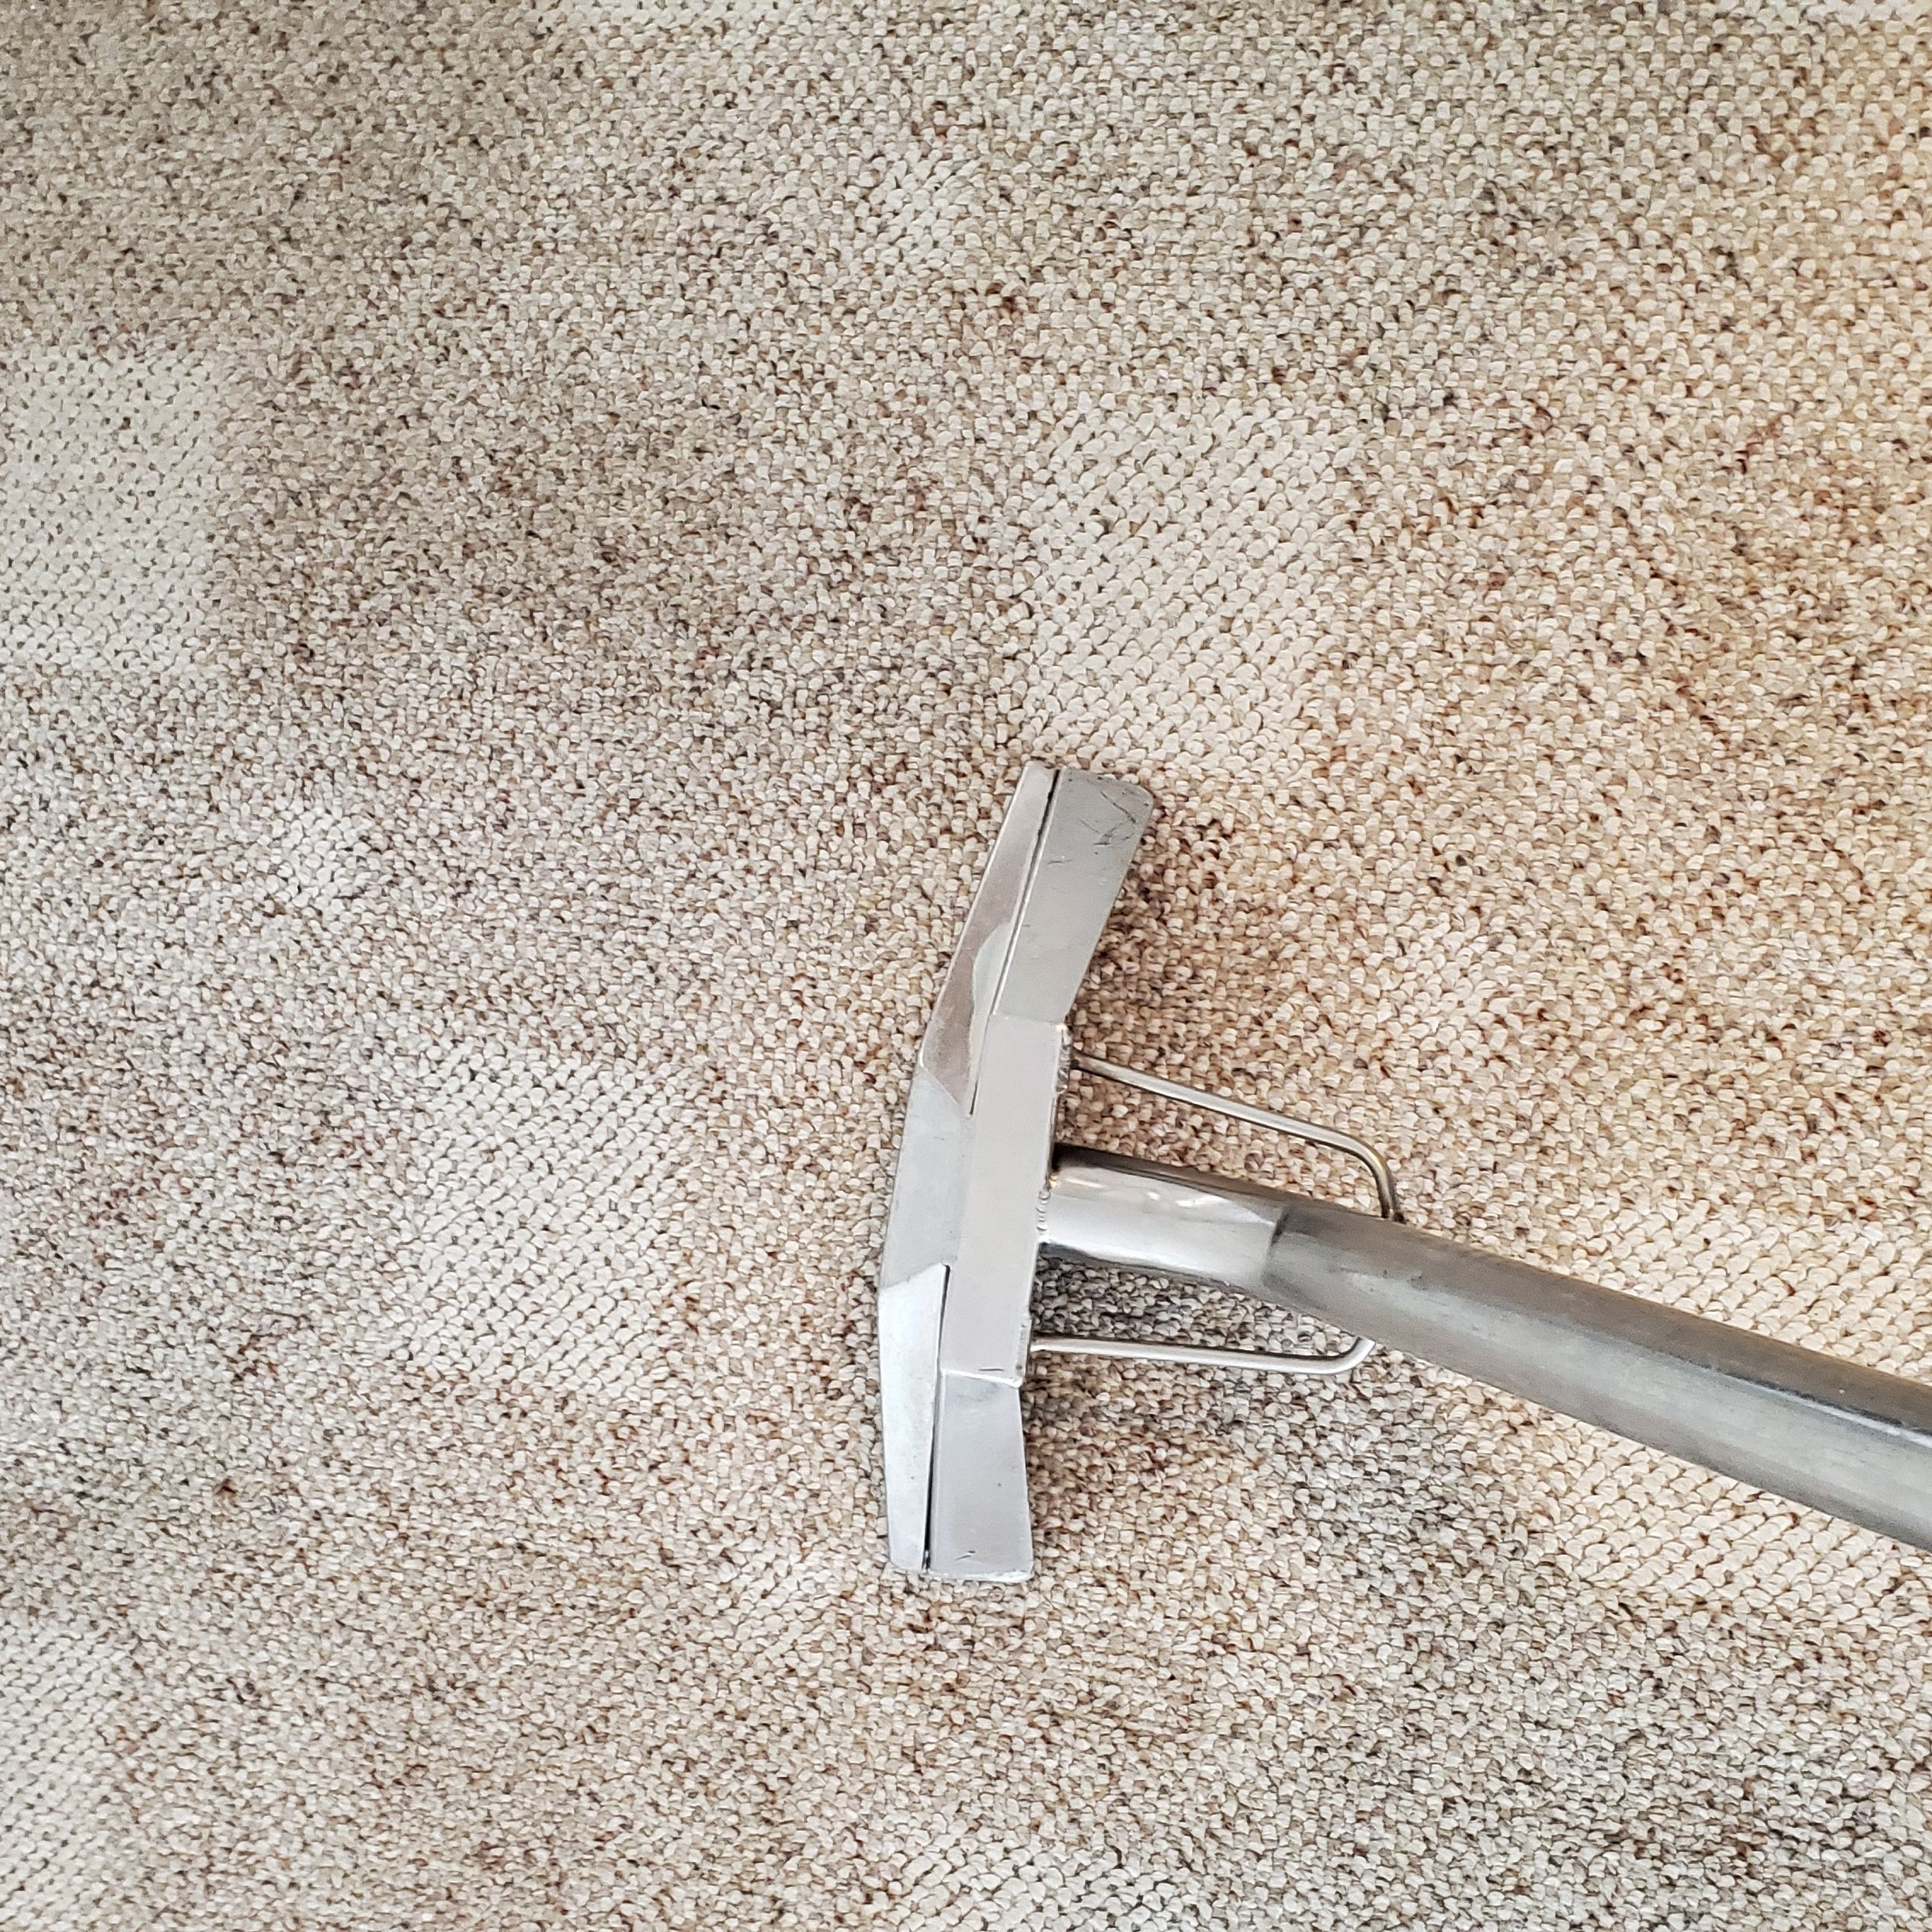 Brighter Tomorrows Carpet Cleaning